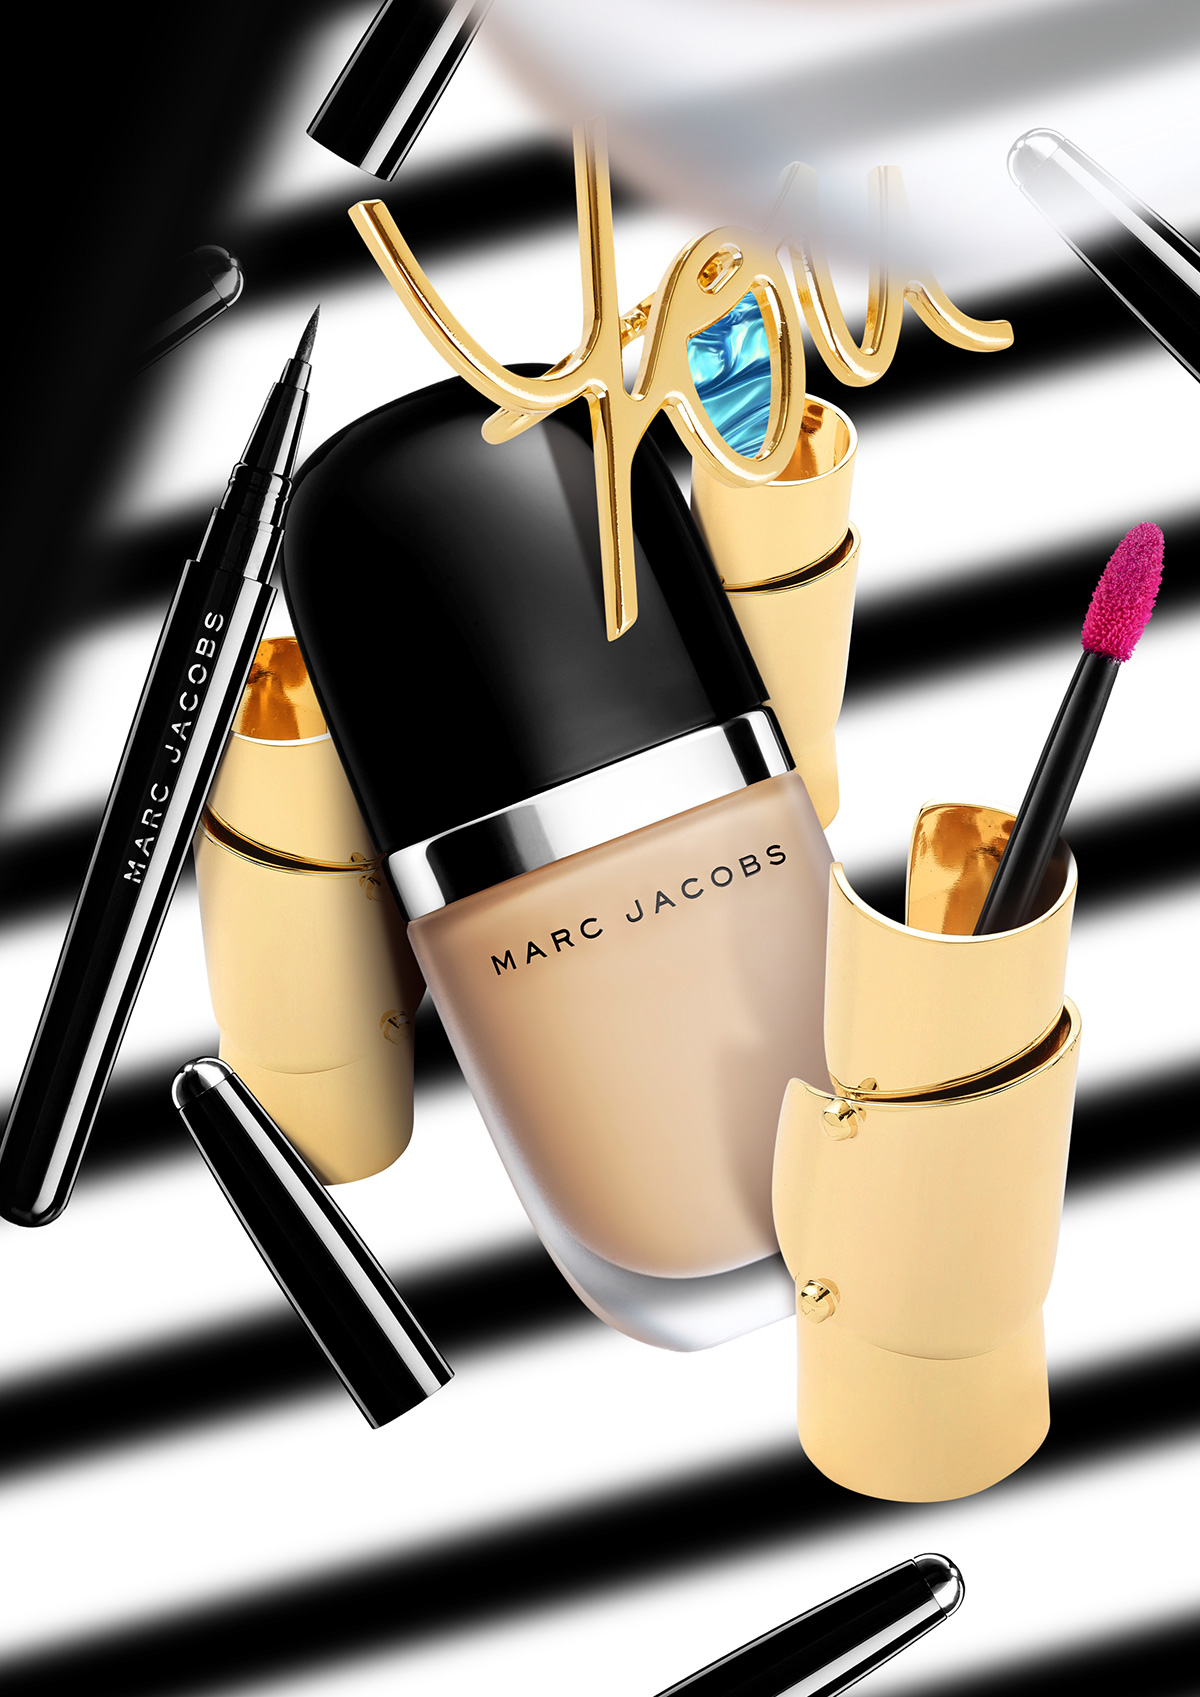 future-paris-sephora-marc-jacobs-03